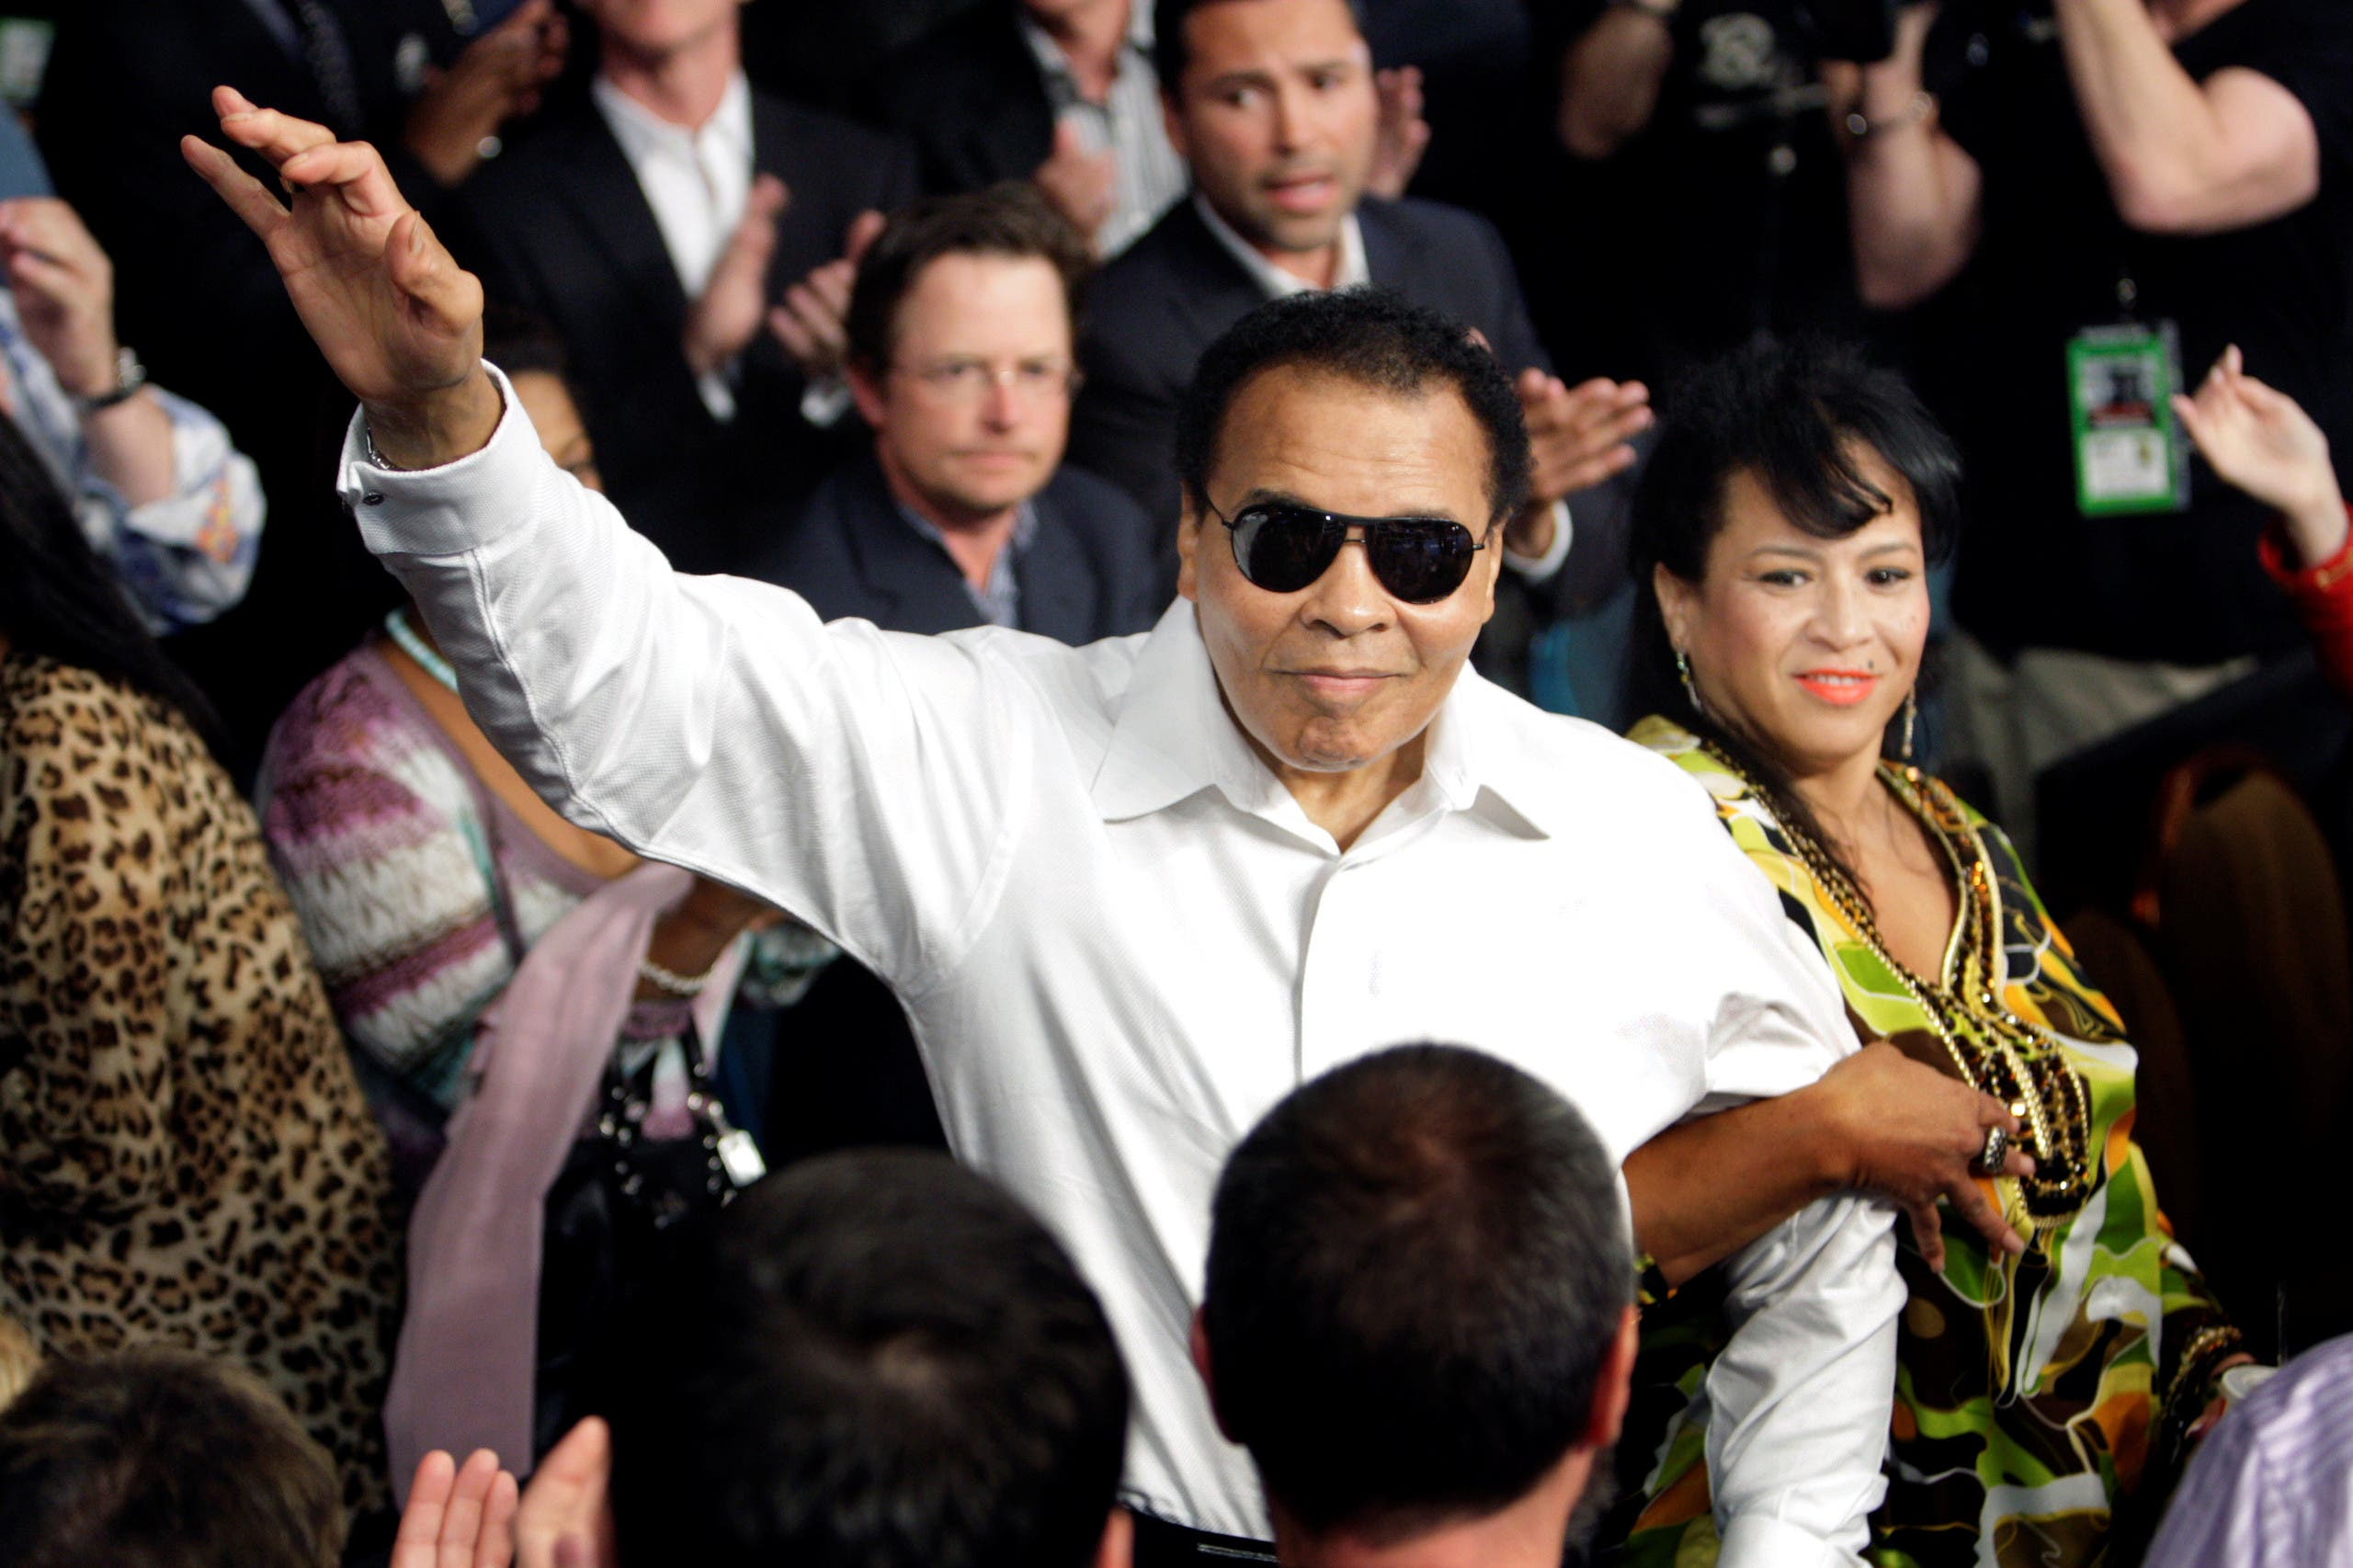 File photo of boxing legend Ali standing with his wife Yolanda as he is introduced at the MGM Grand Garden Arena in Las Vegas. (Reuters)